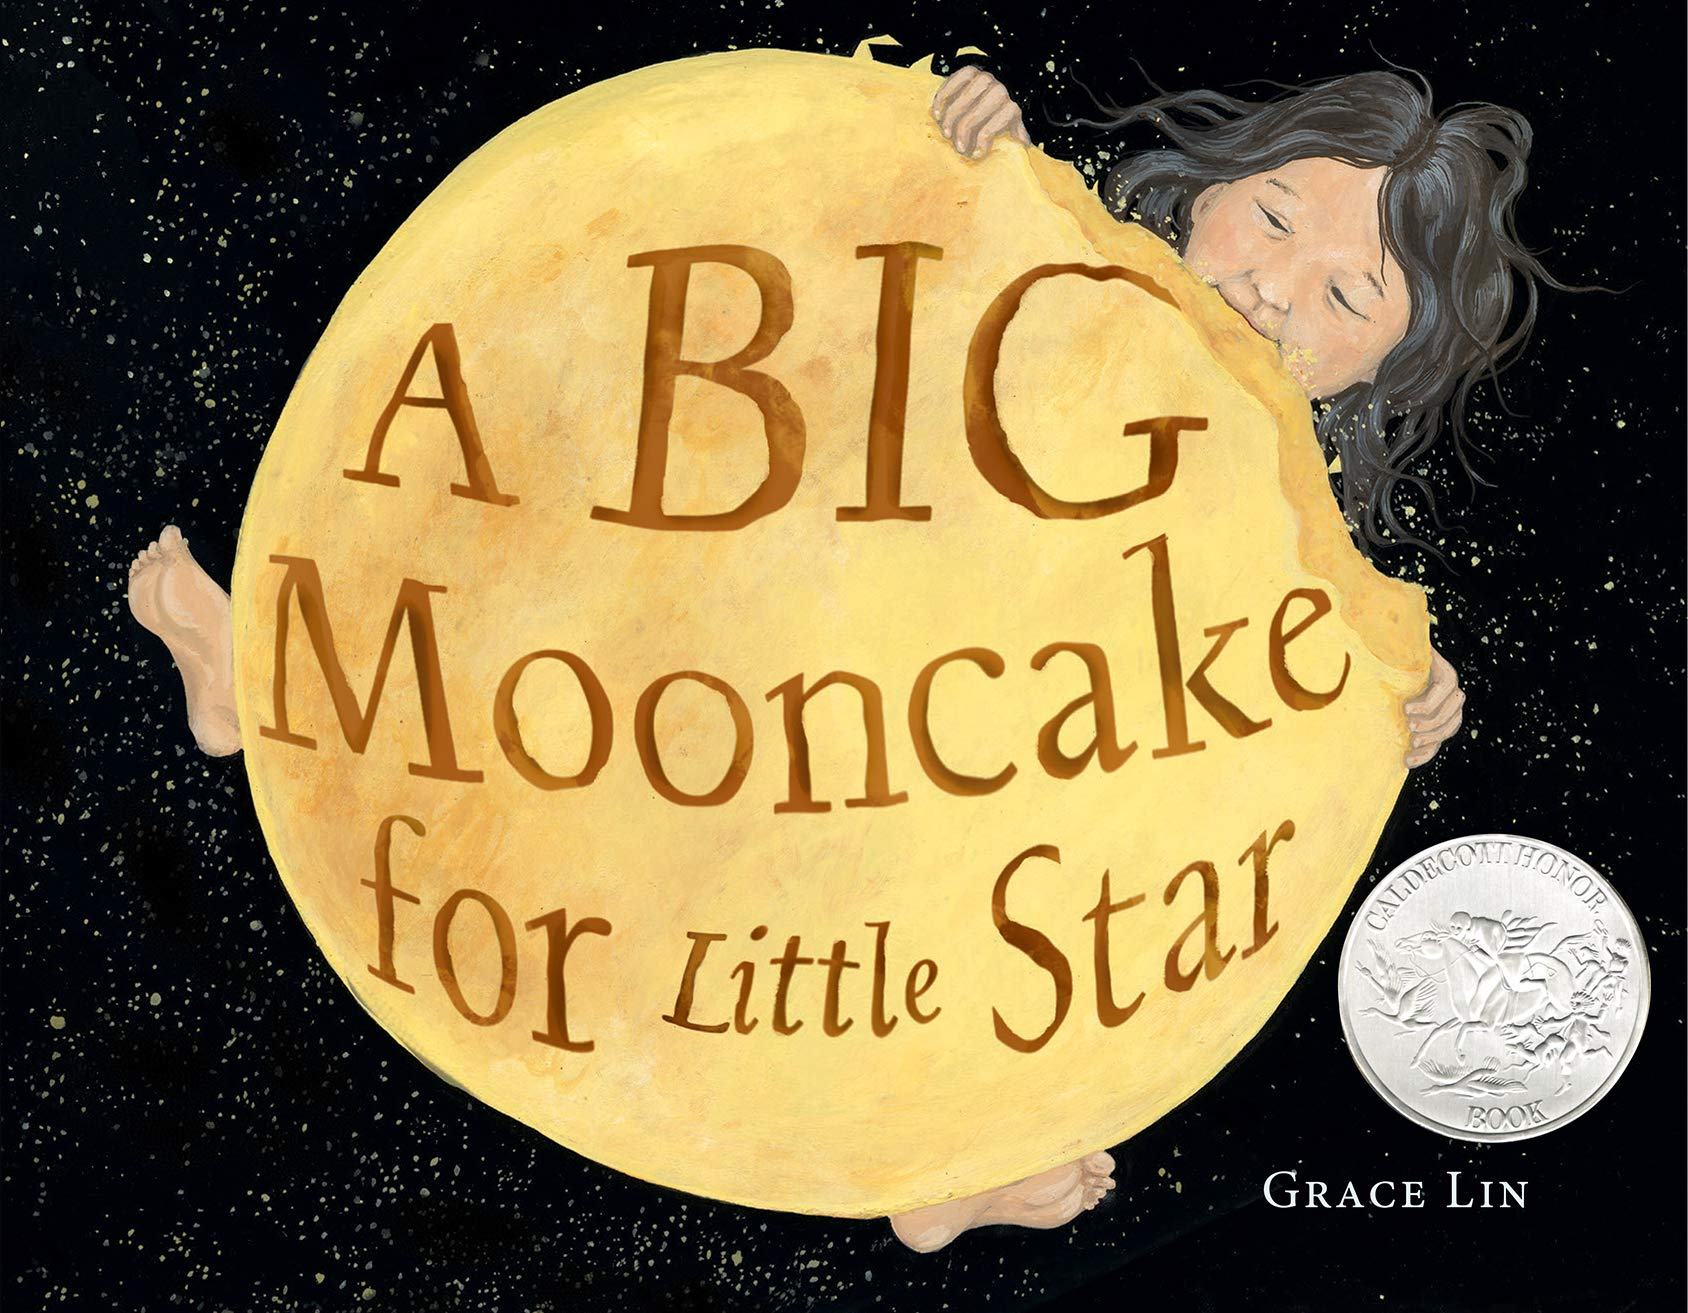 A Big Mooncake for Little Star - Me Books Asia Store